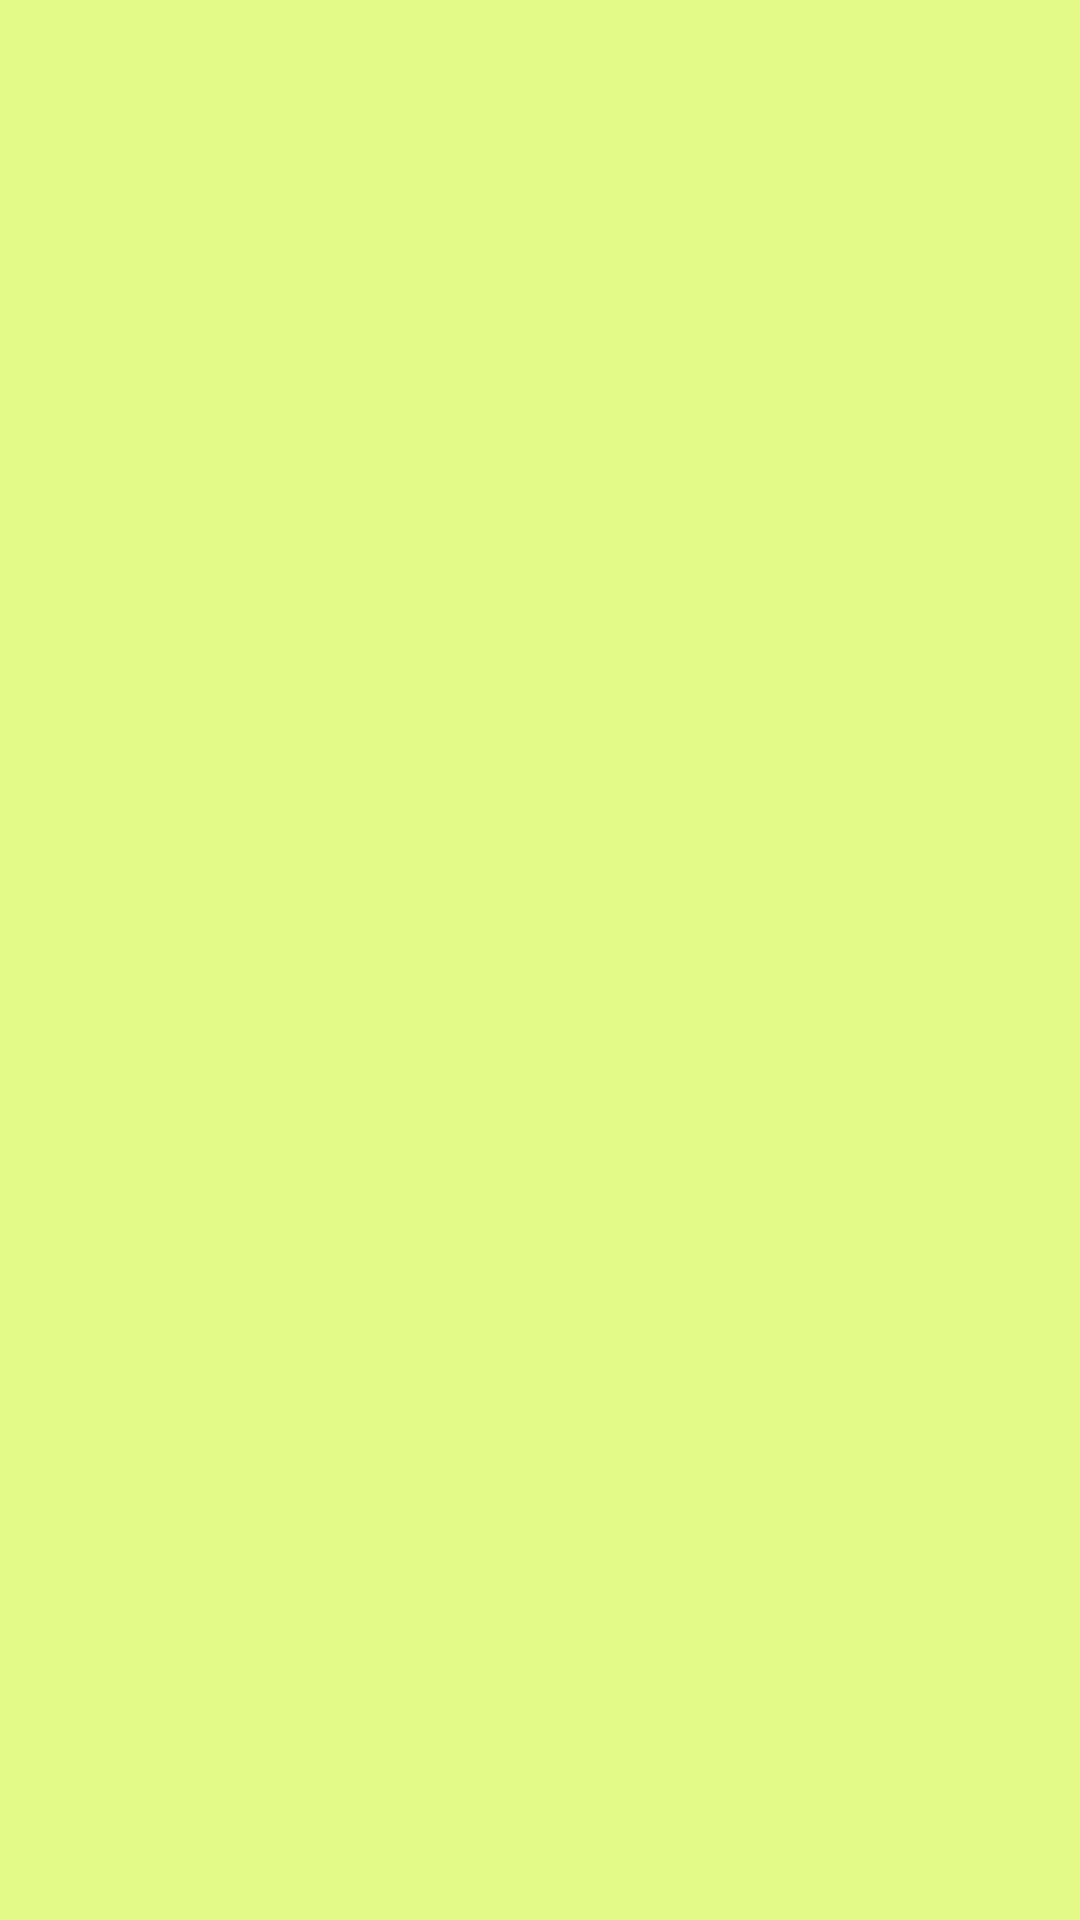 1080x1920 Midori Solid Color Background